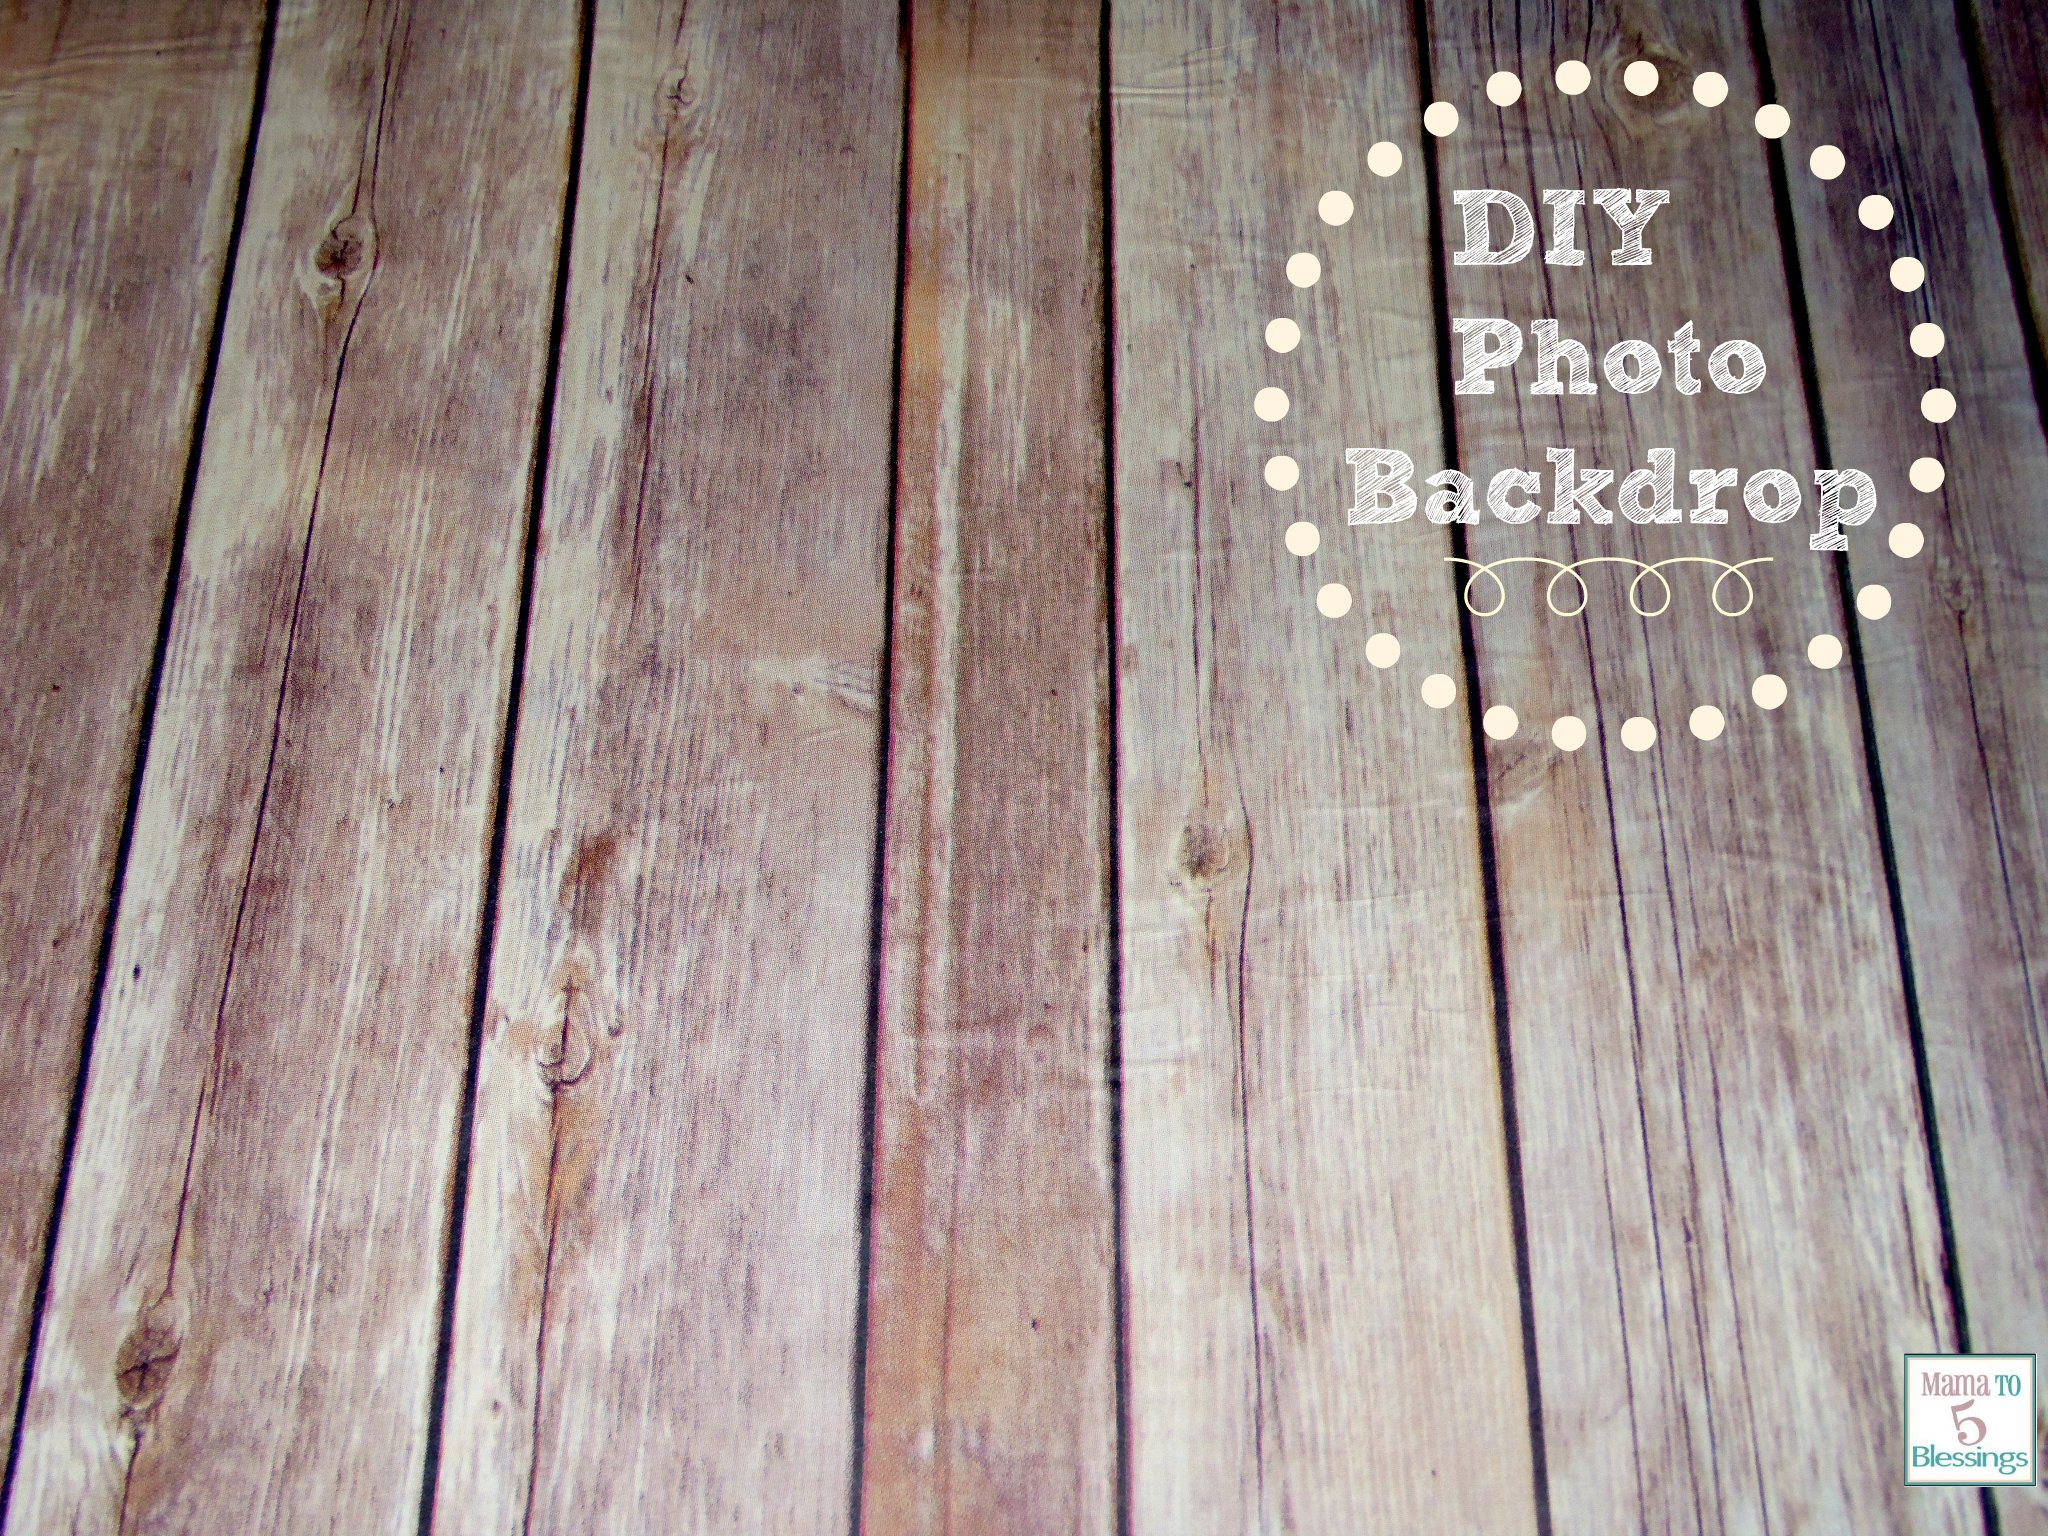 13 DIY Photography Backgrounds Backdrops Images